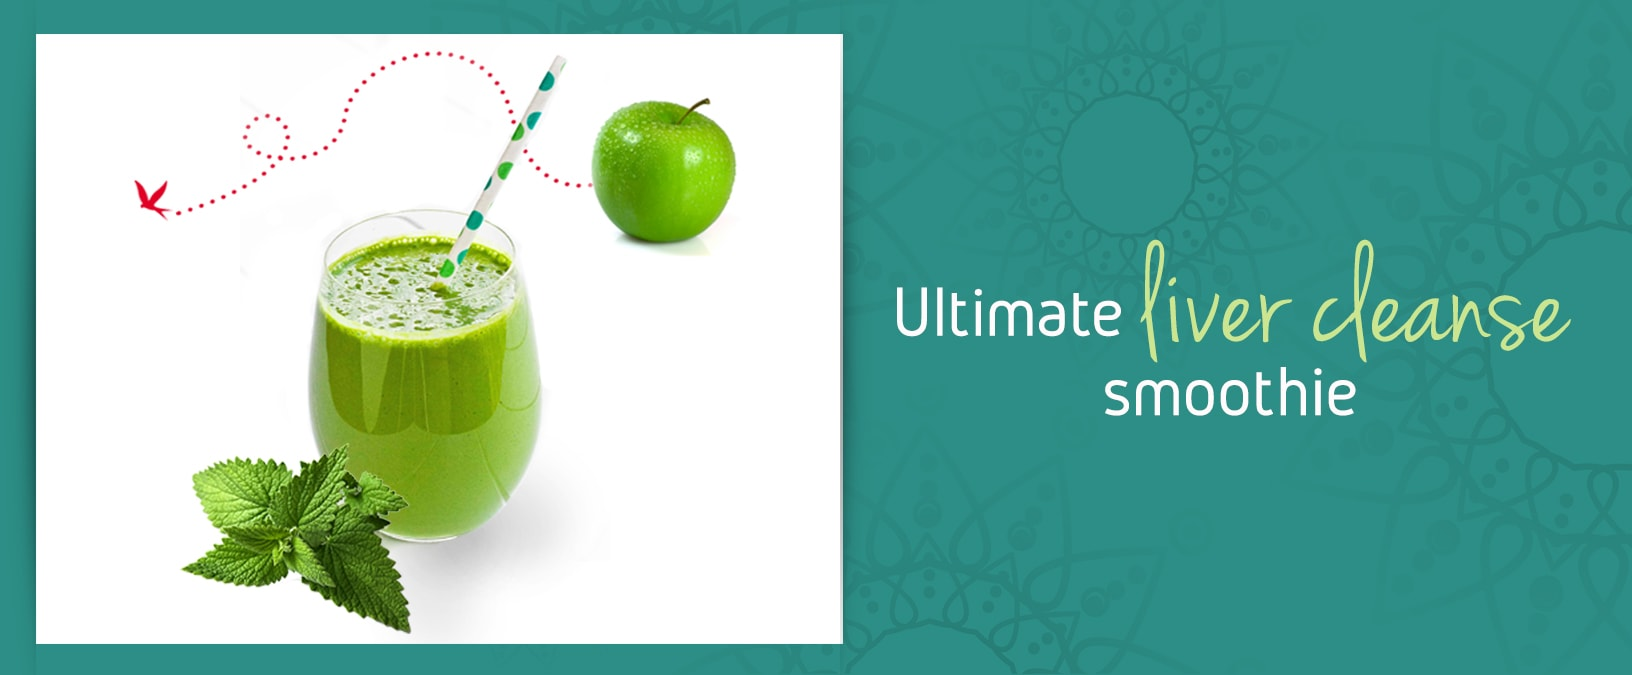 ultimate liver cleanse smoothie